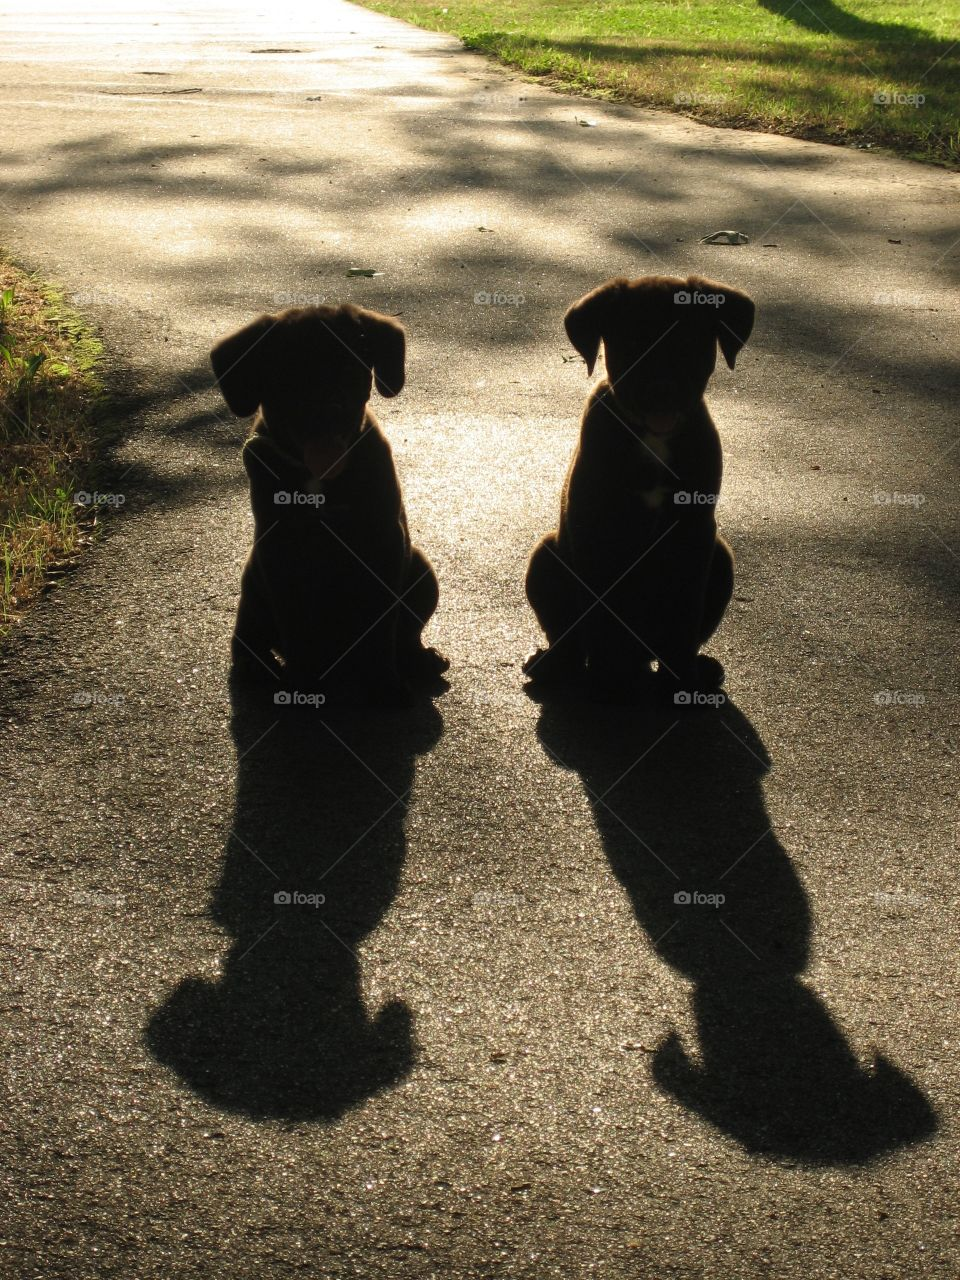 2 black lab puppies cast long shadows as they patiently practice their training and wait to be called.